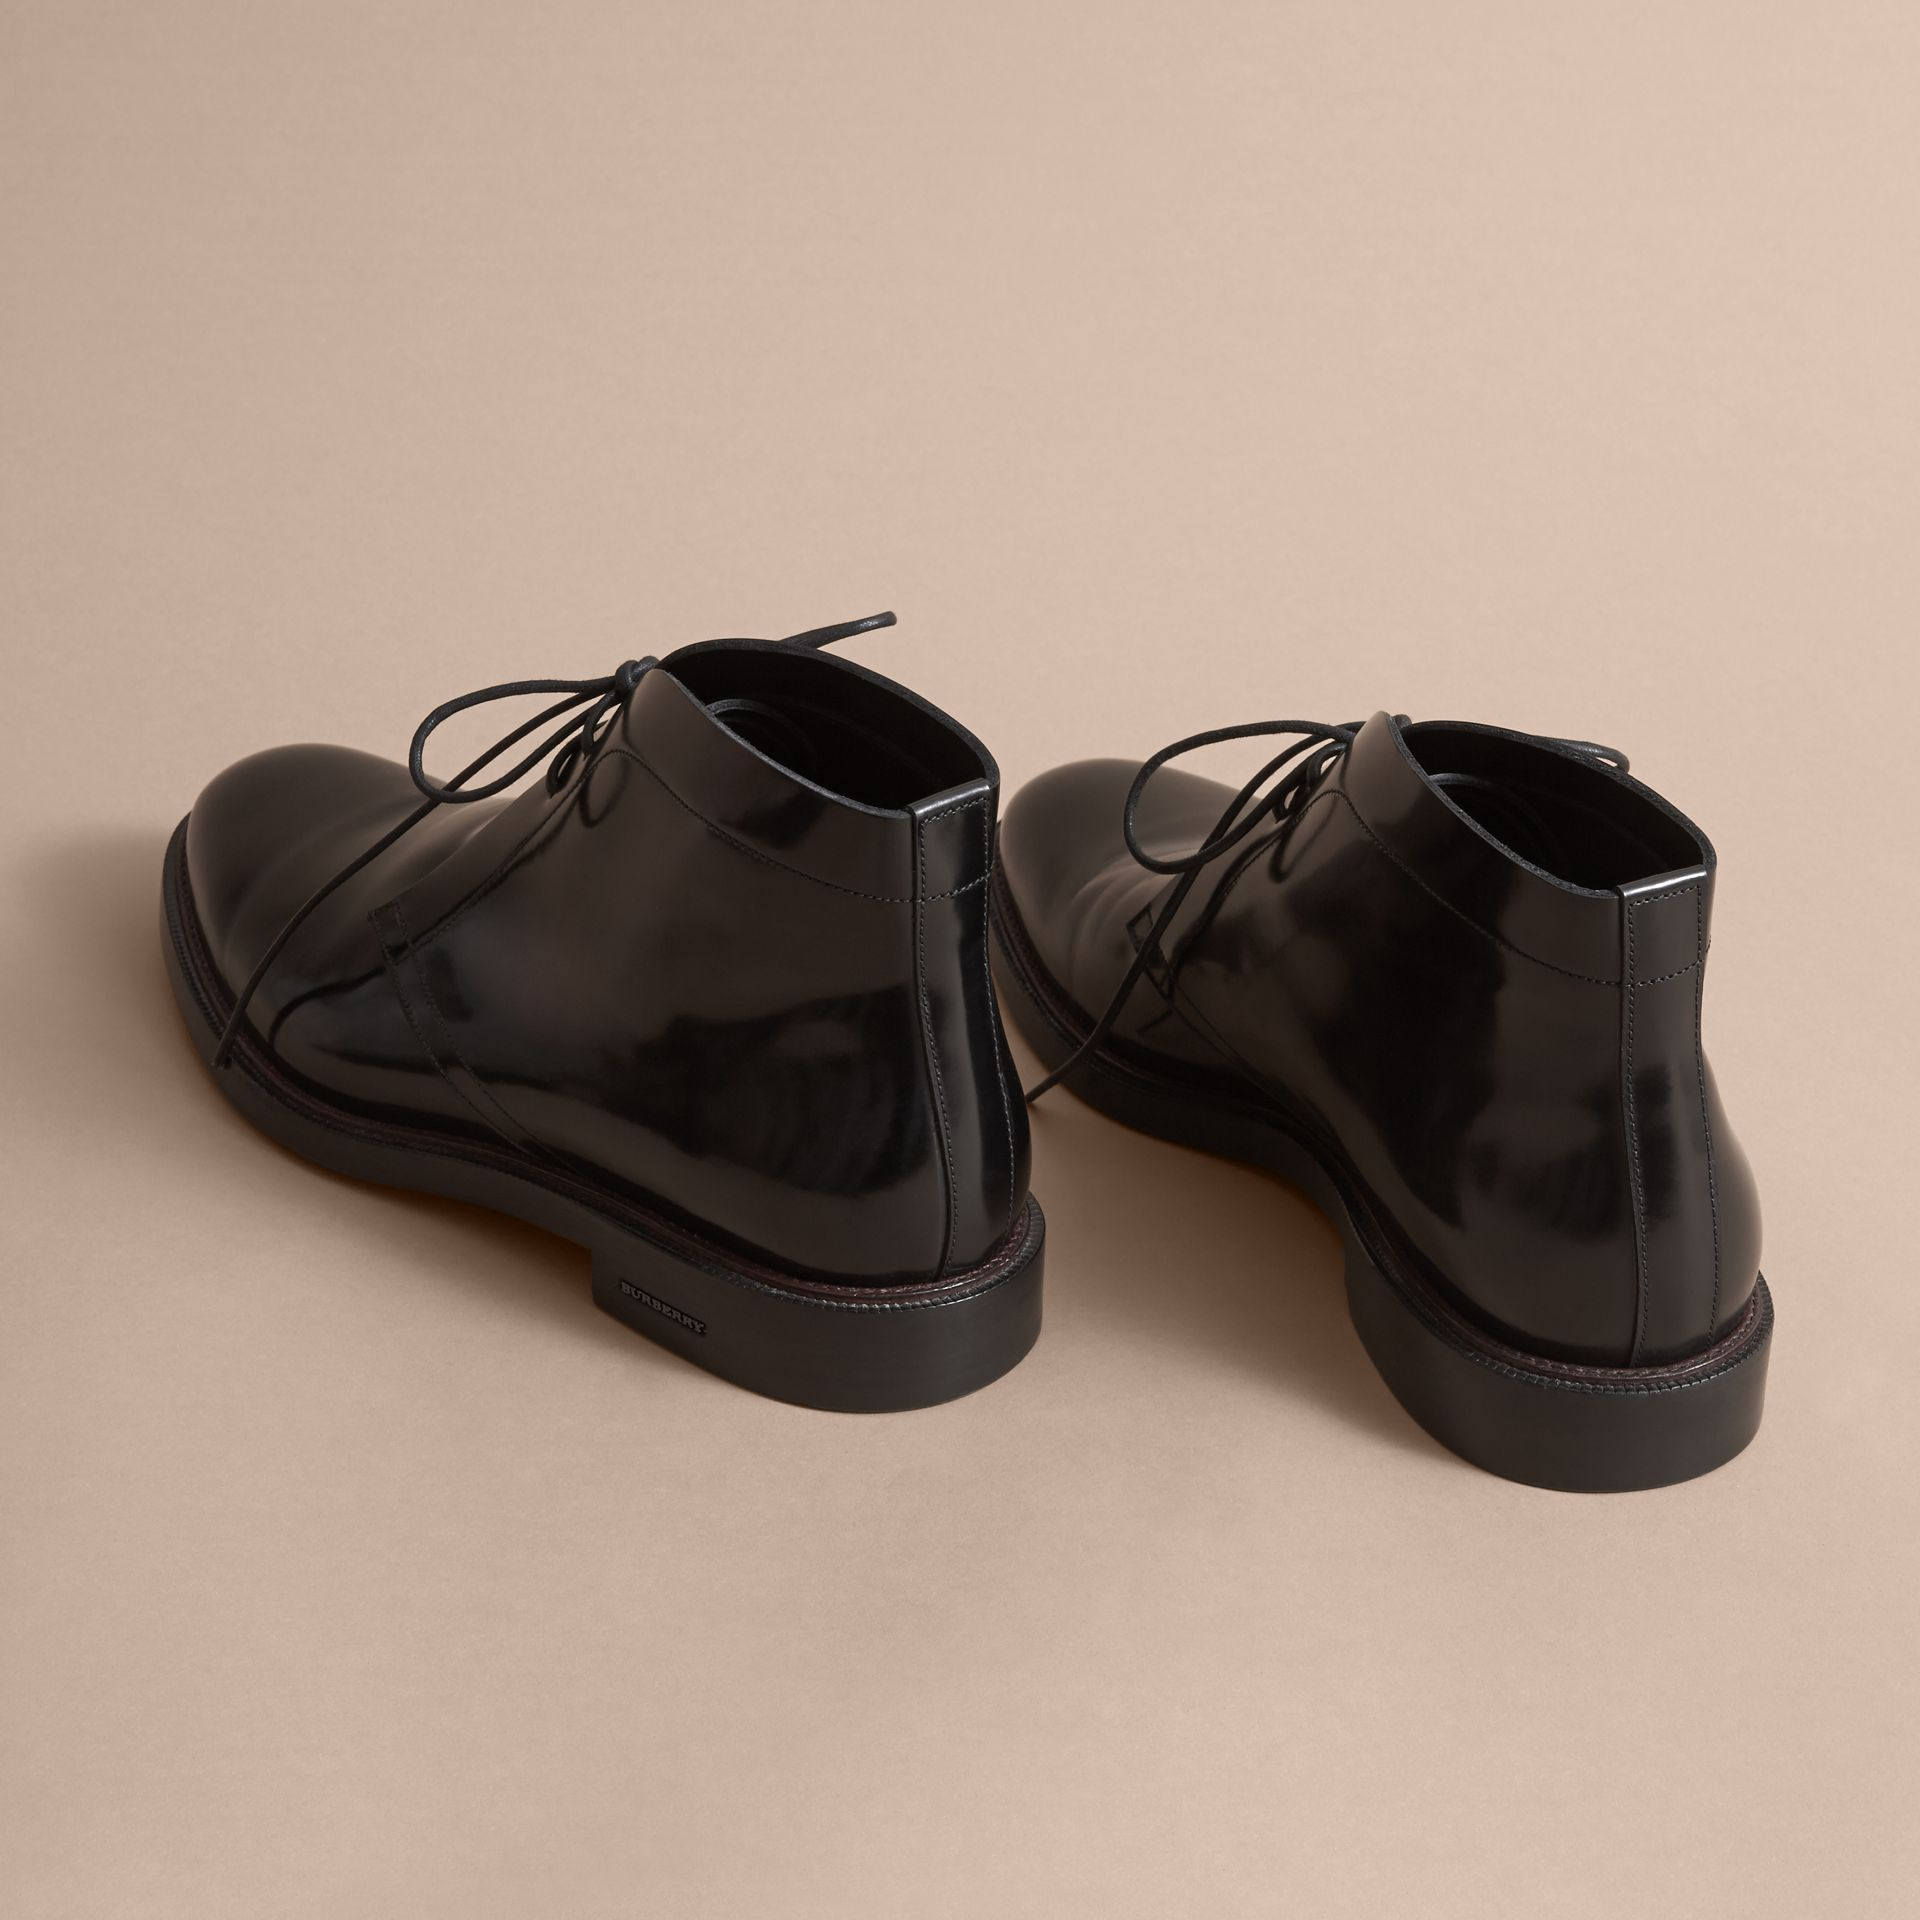 Polished Leather Desert Boots in Black - Men | Burberry - gallery image 4